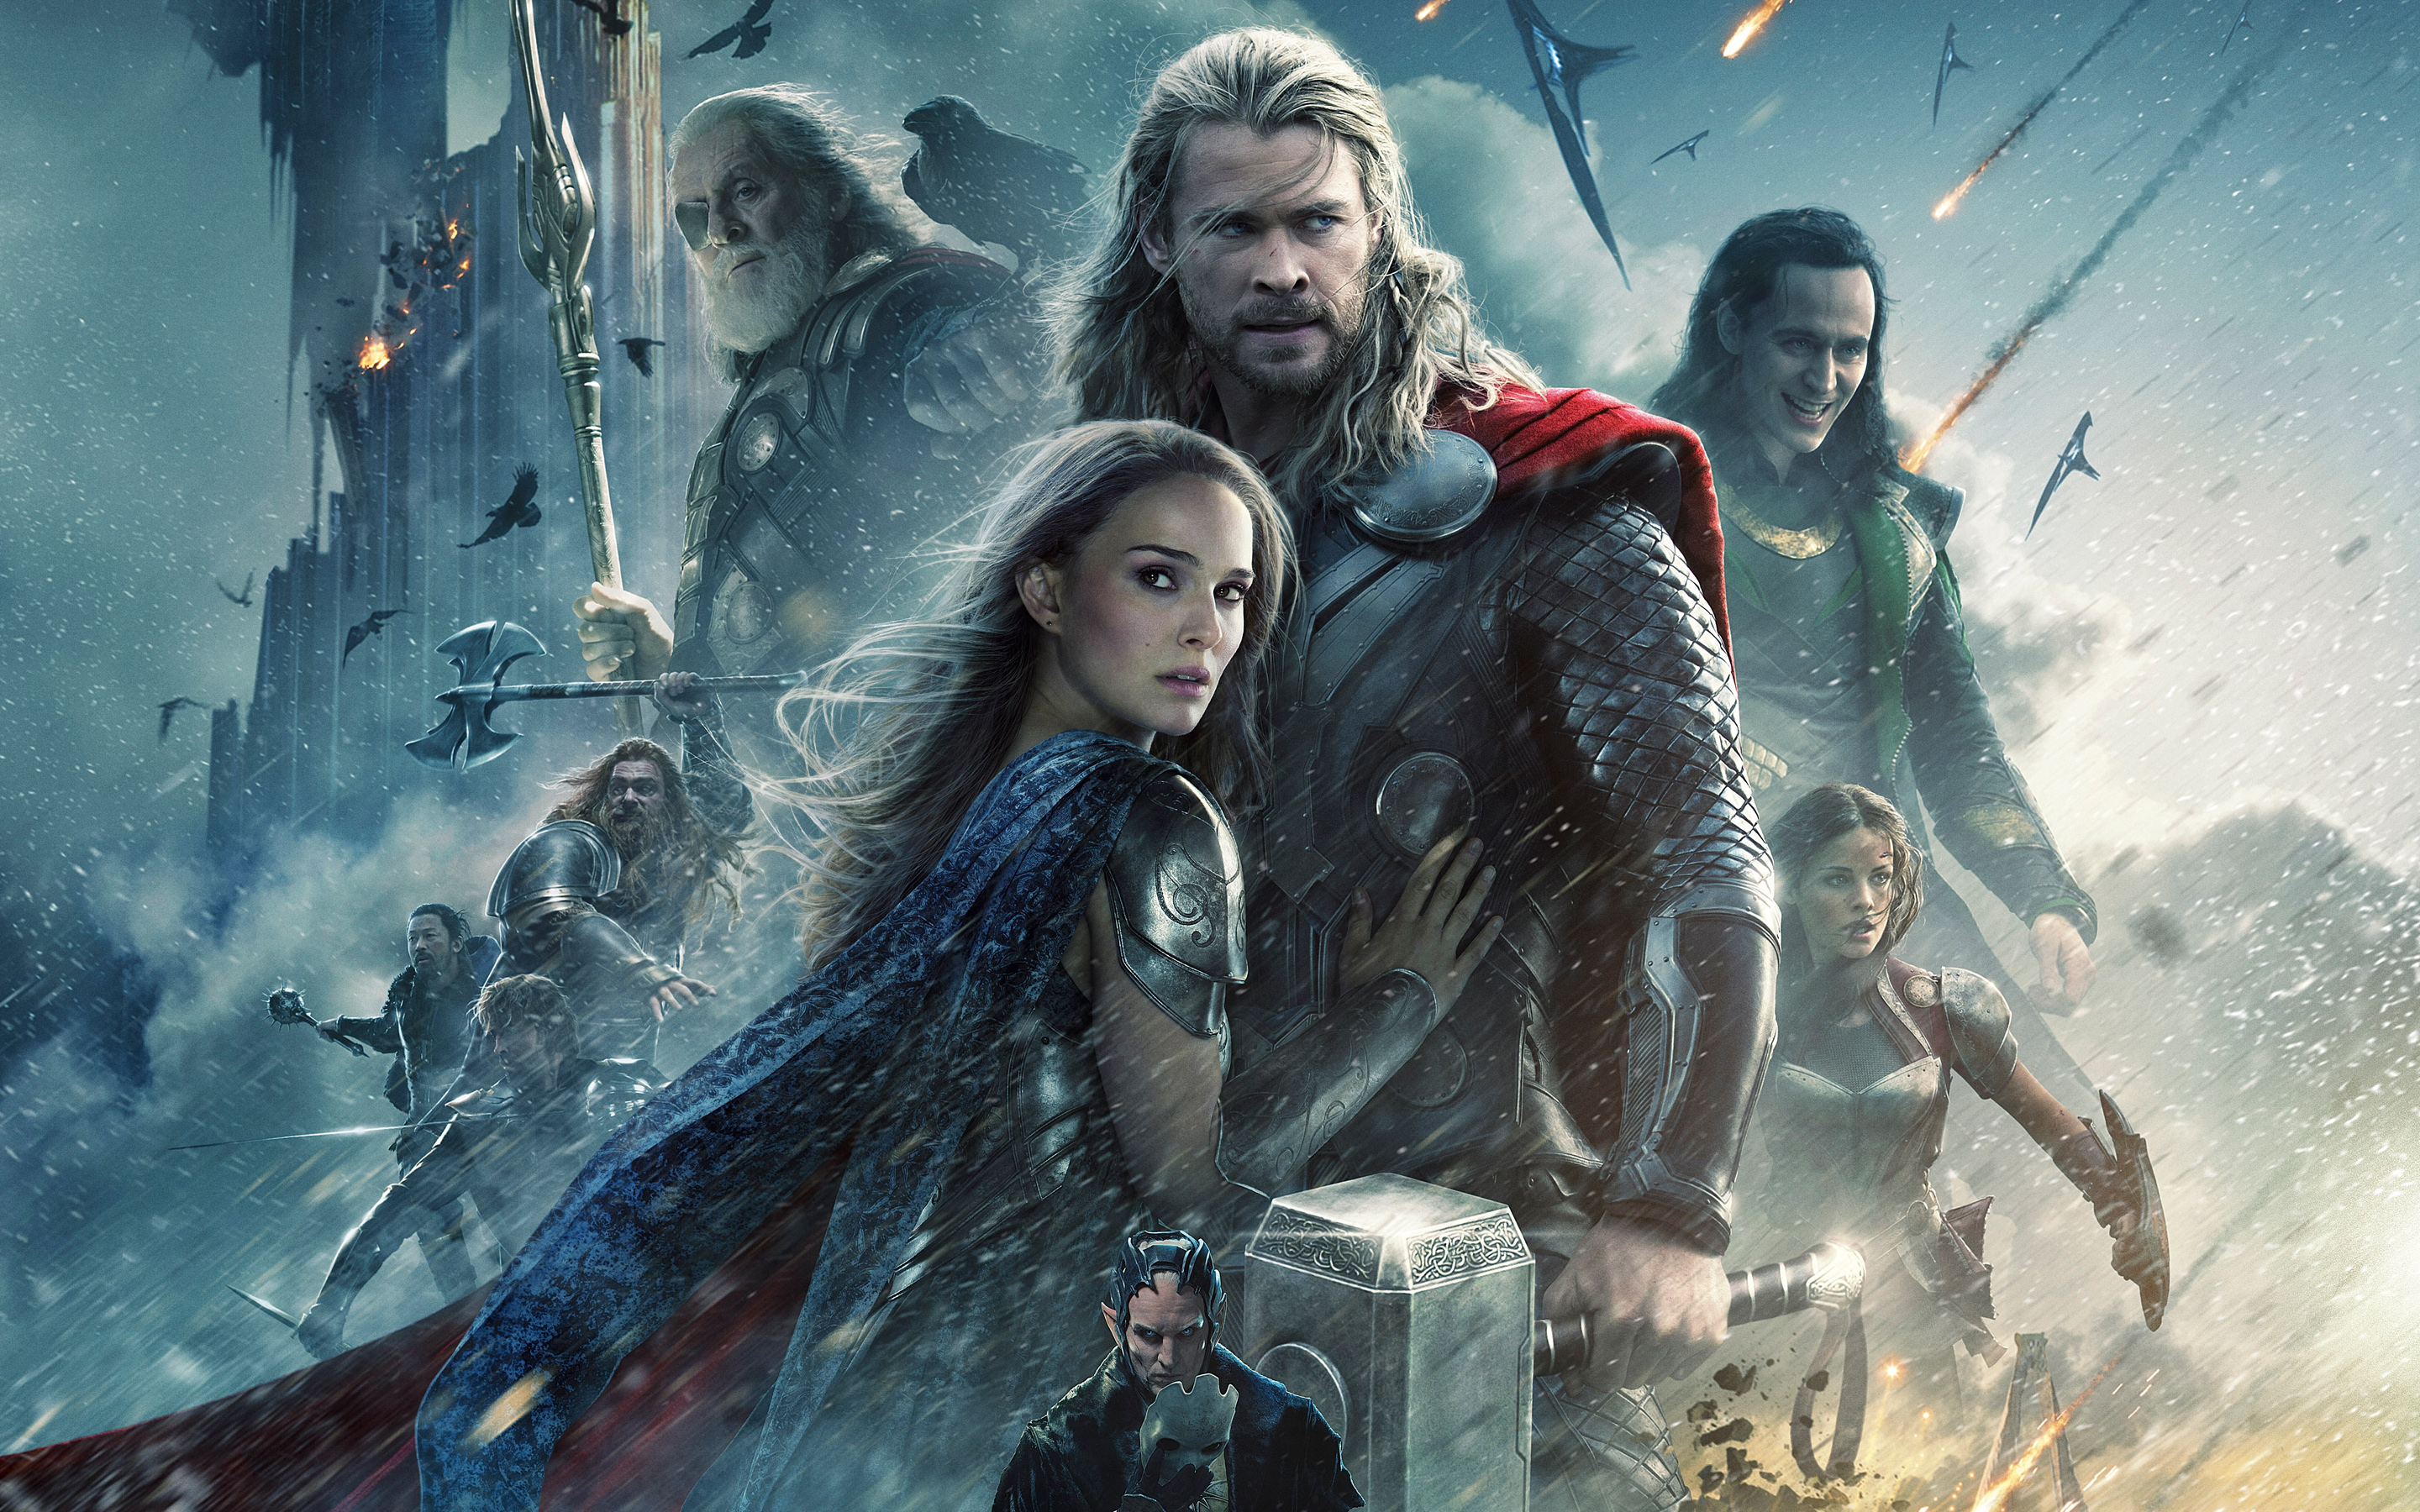 I really did like Thor: The Dark World when I first saw it. I still do in a lot ways. It expands upon the Norse mythos established in the previous film, ...